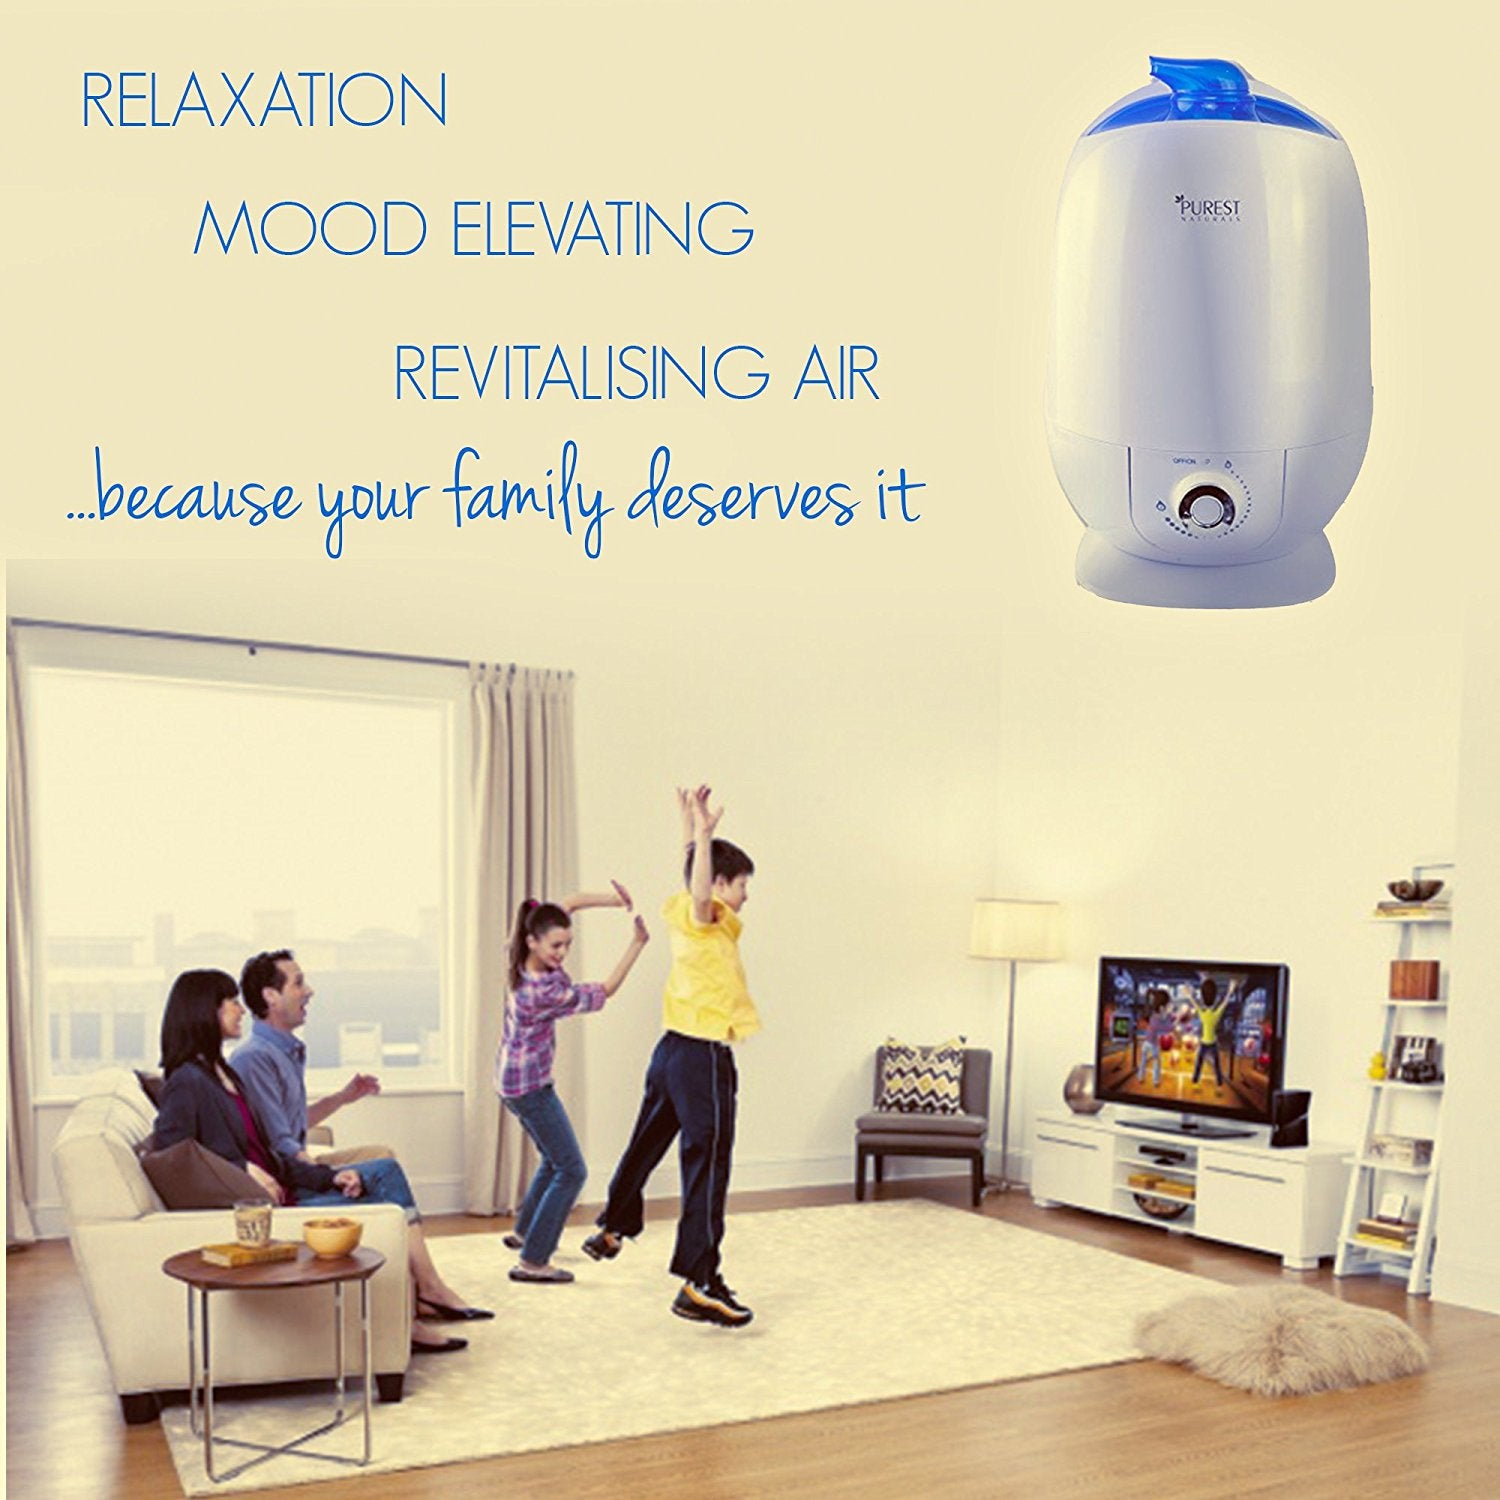 Purest Naturals Ultrasonic Cool Mist Humidifier Diffuser - 5.5L Large Capacity, Whisper-Quiet Operation, Automatic Shut-Off - 360° Rotatable Mist Outlet - Best For House, Kitchen, Bedroom, Bathroom